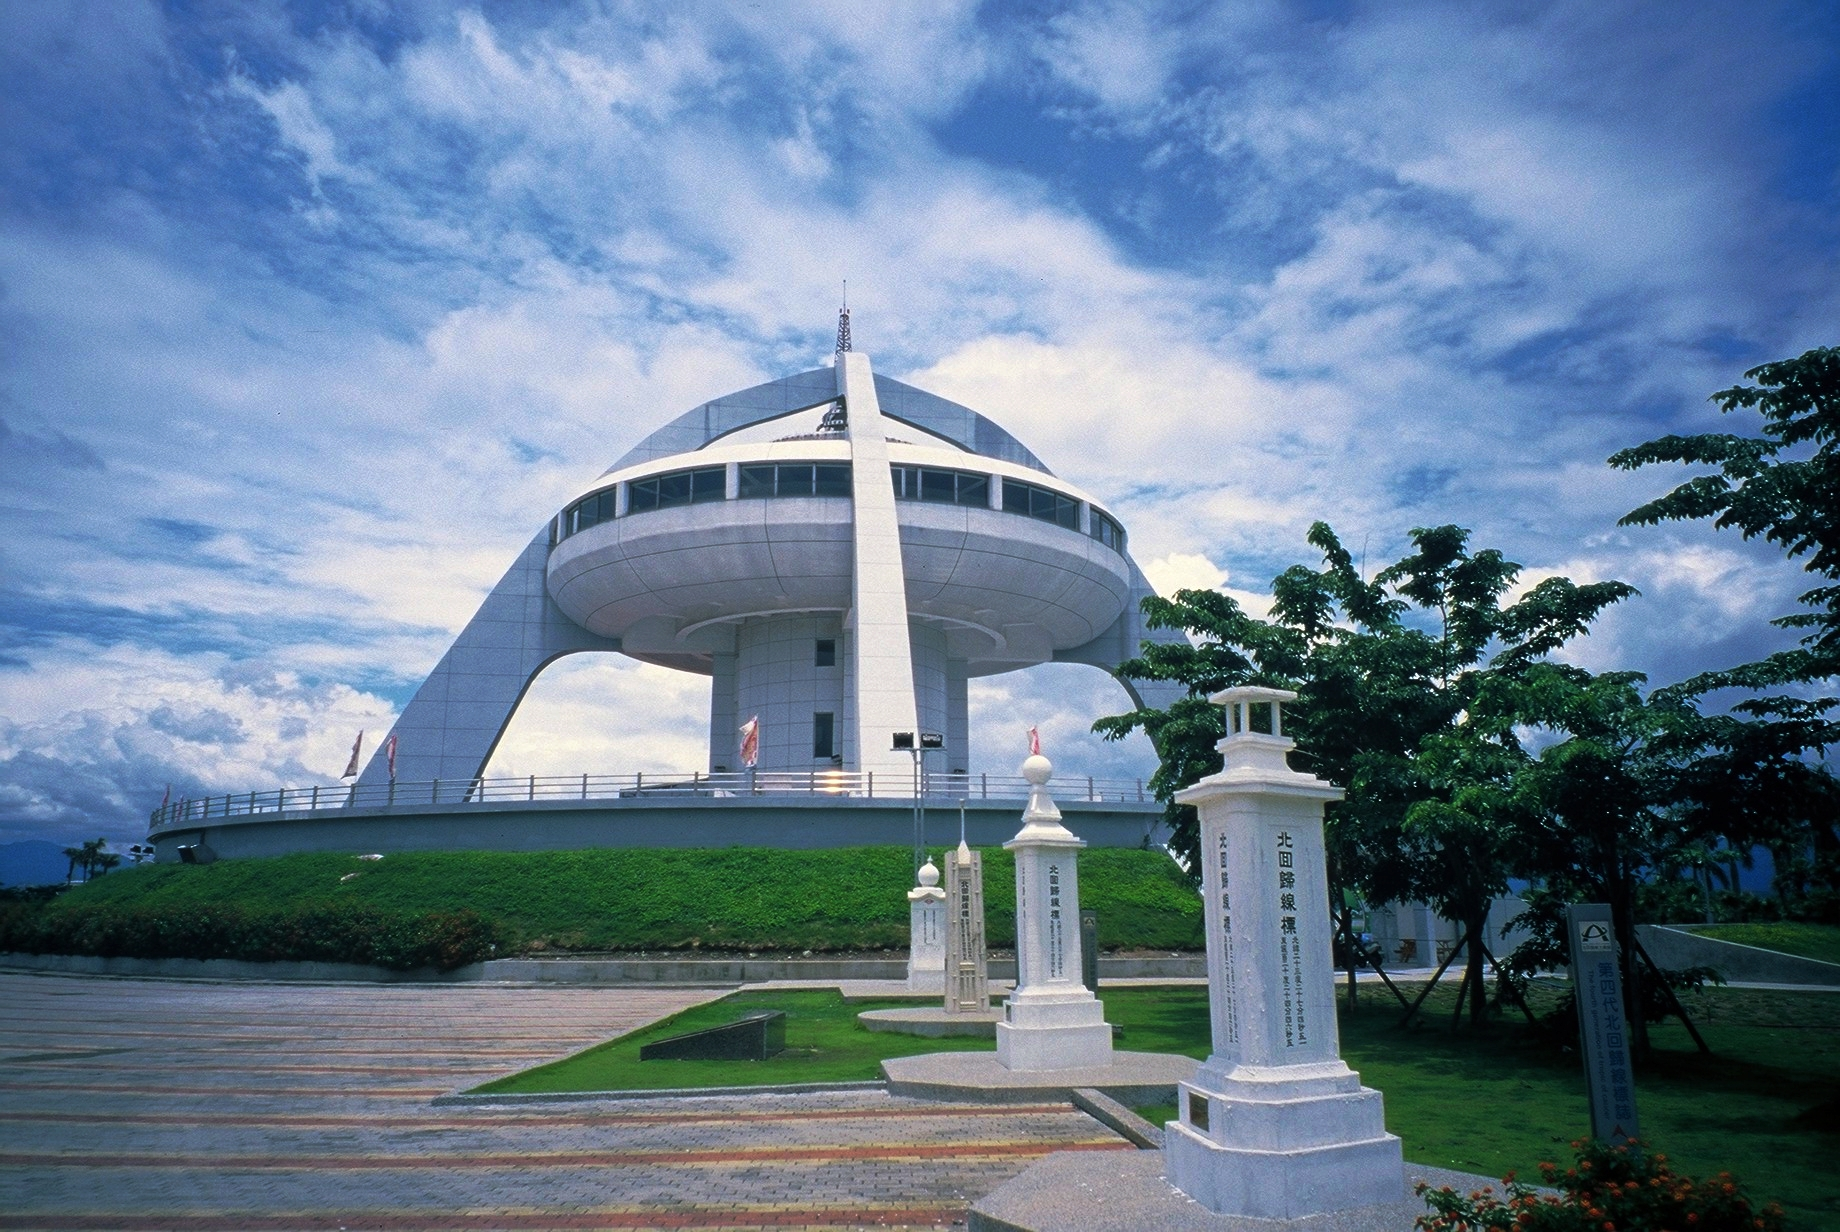 Chiayi Taiwan  City new picture : ... Tropic of Cancer Monument in Chiayi Taiwan 02 Wikimedia Commons